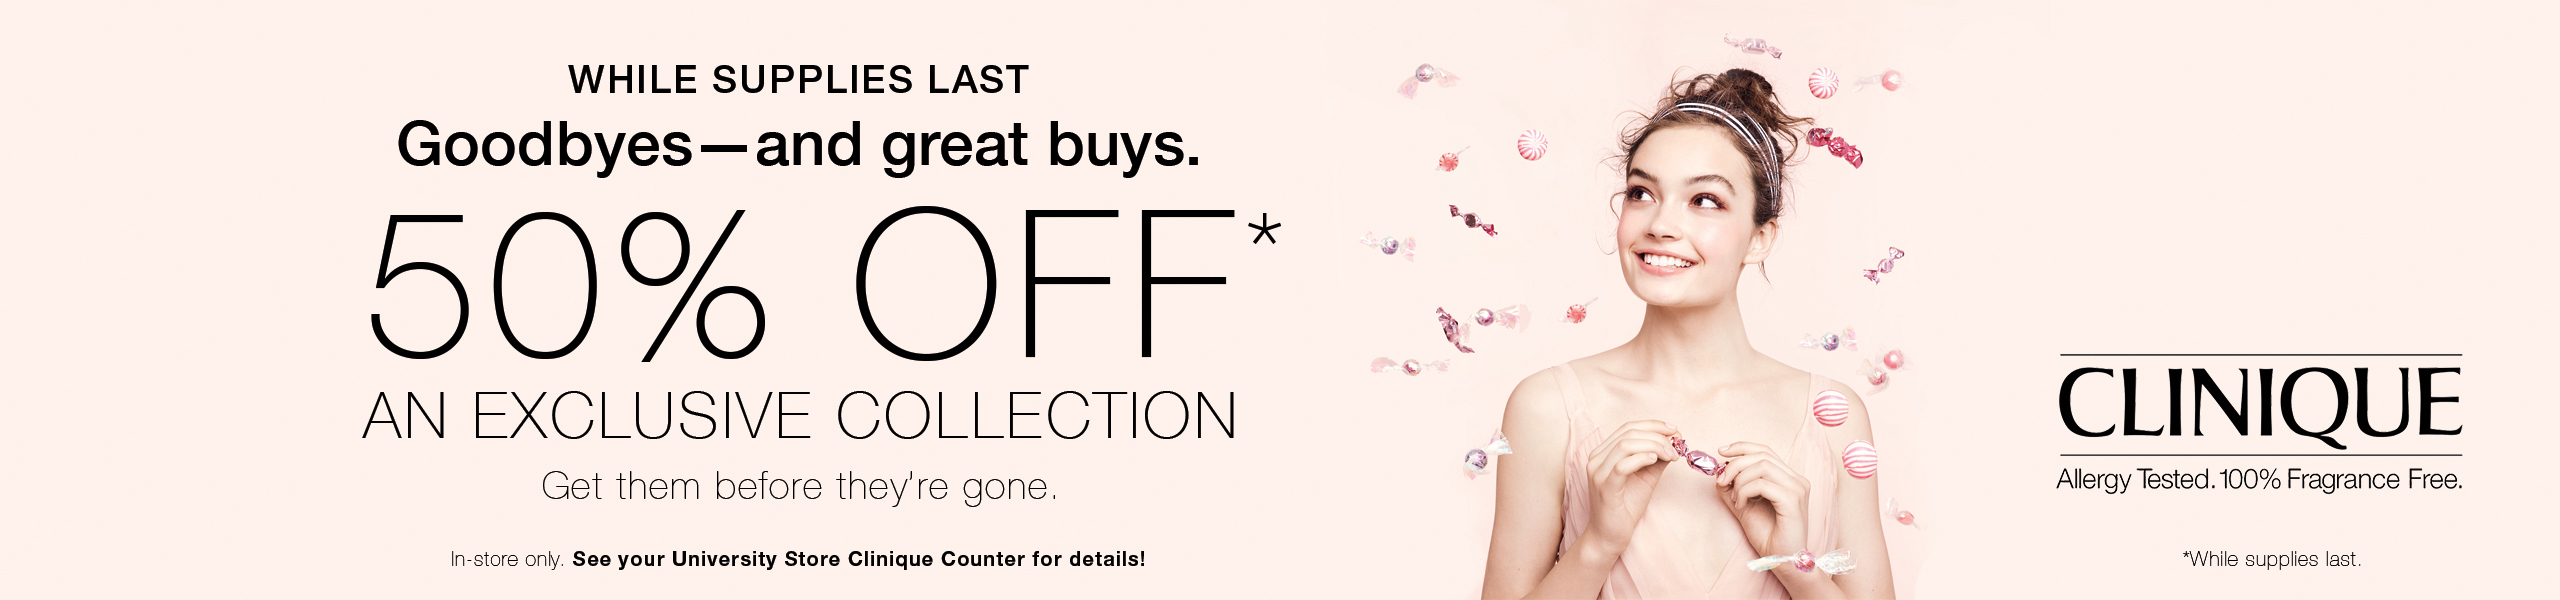 Come see Clinique's Flash Sale!